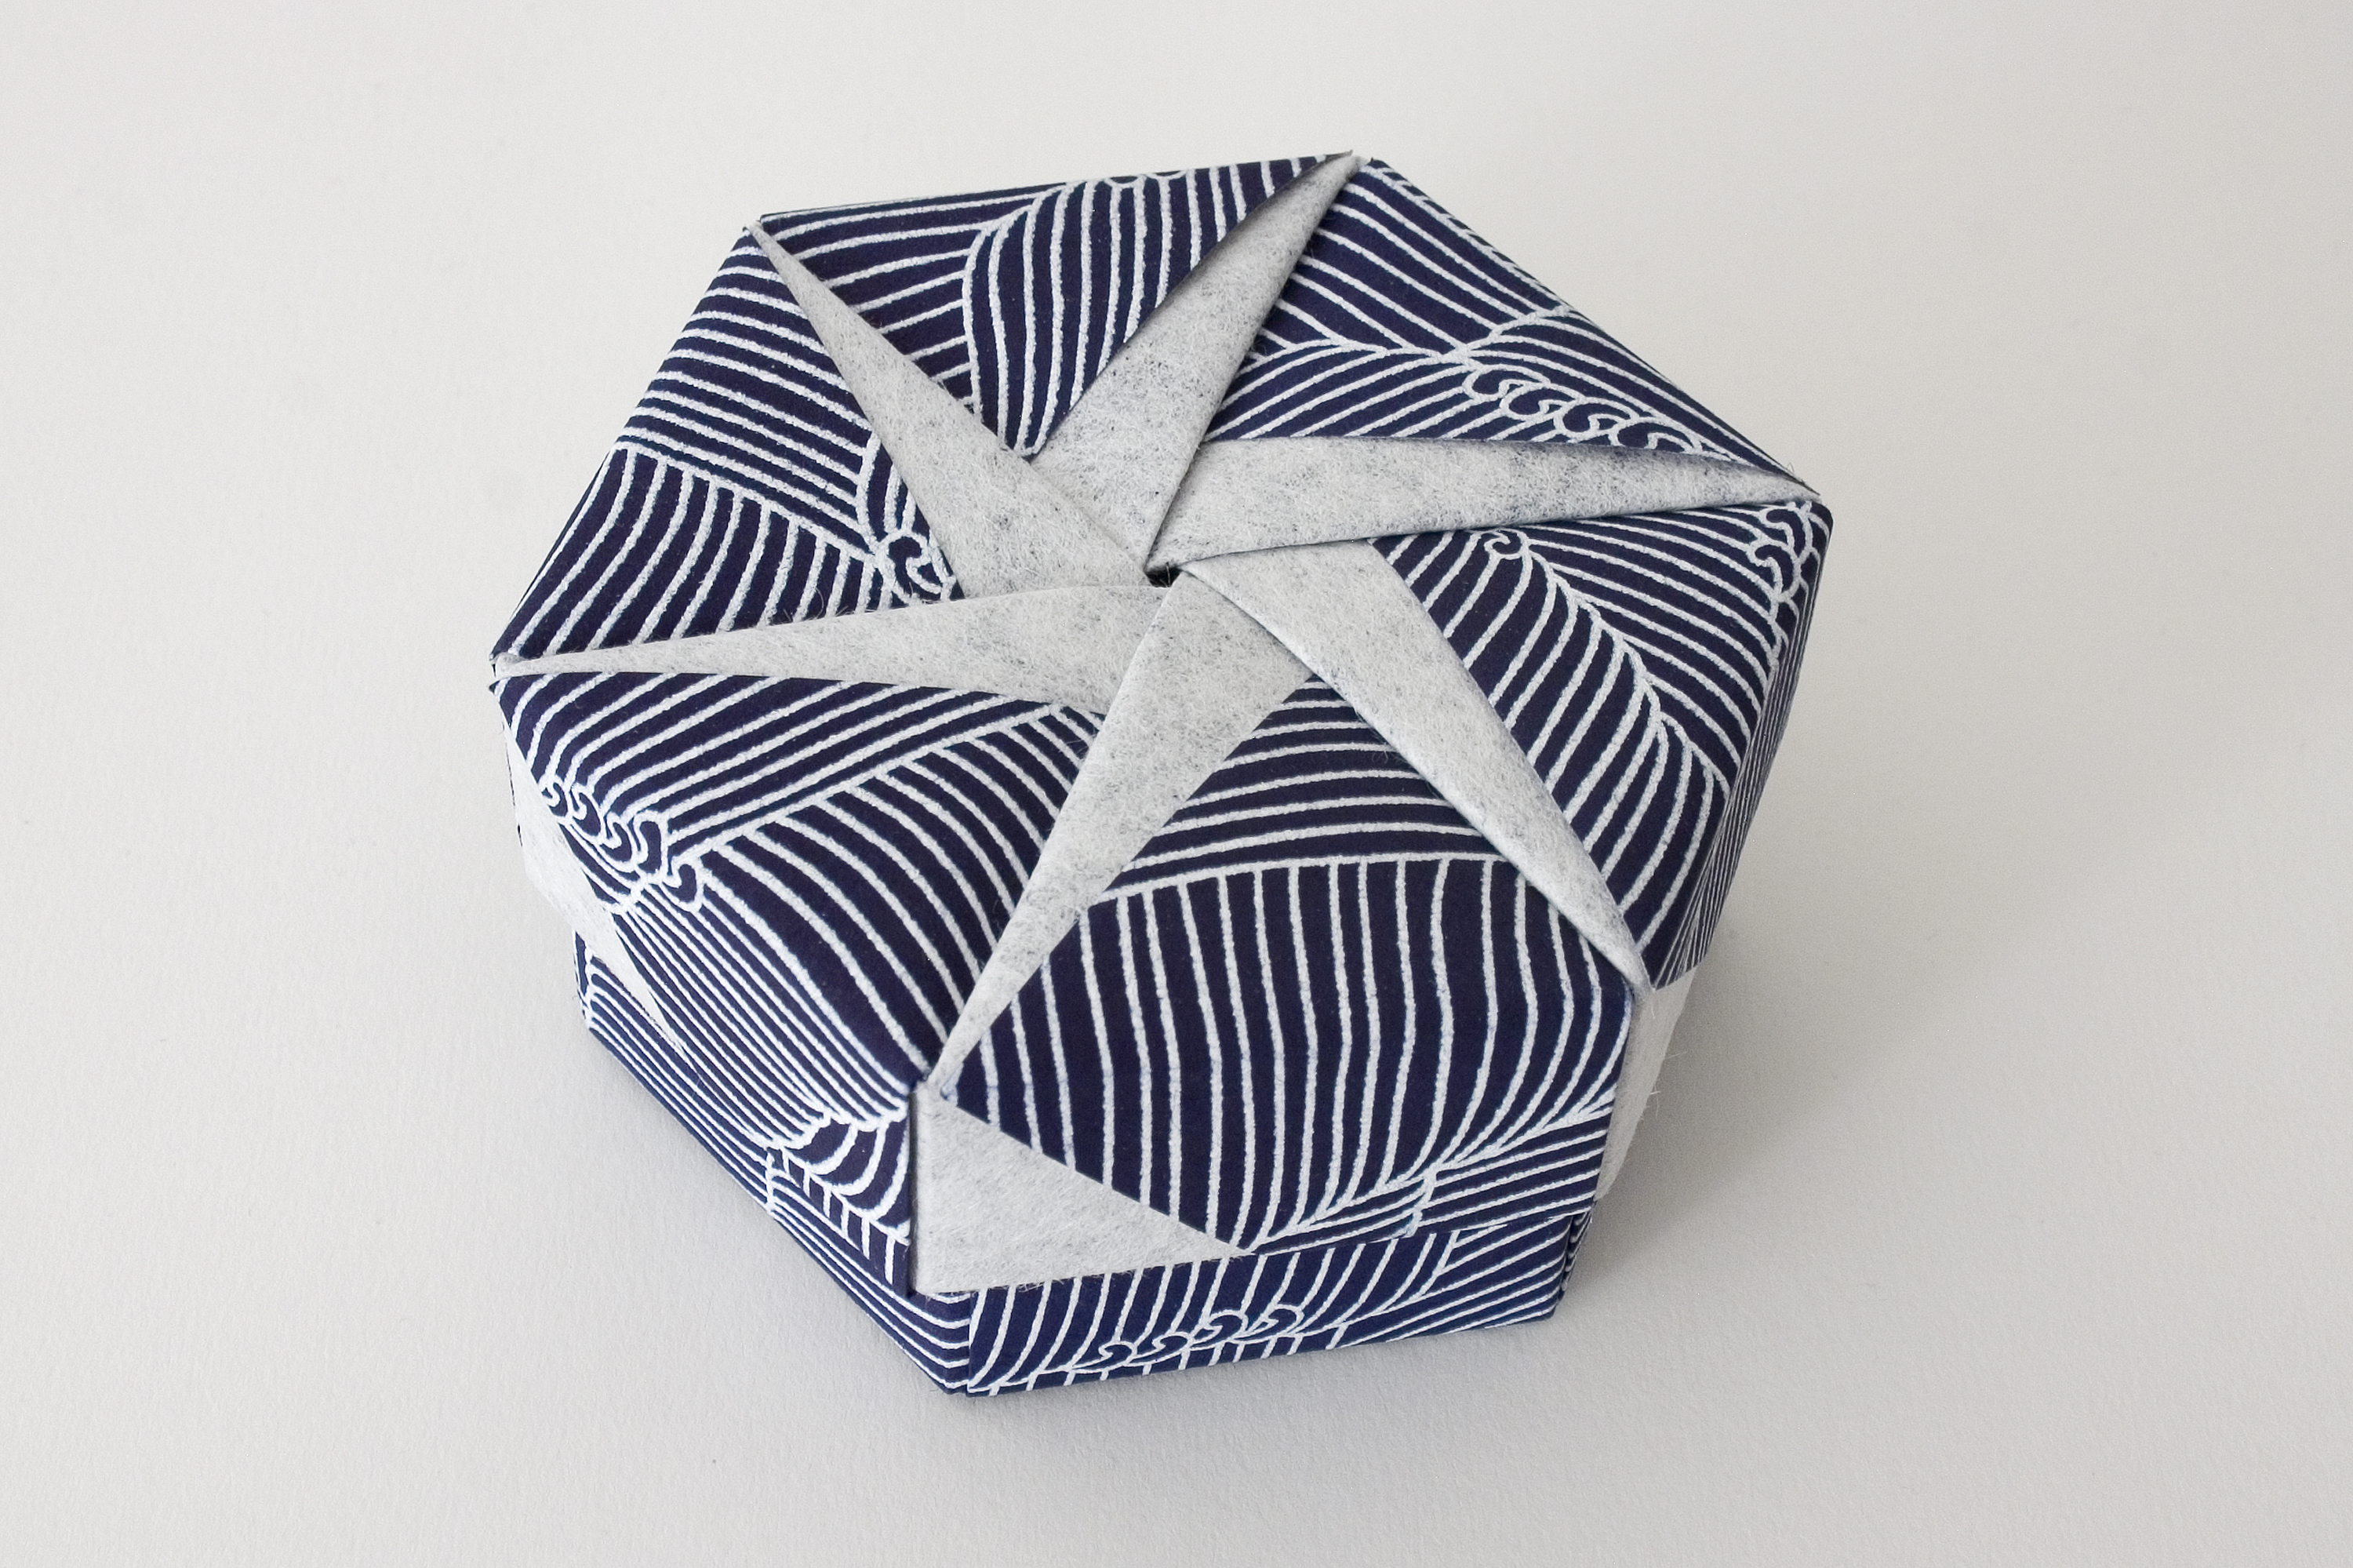 Hexagonal Origami Box with Lid #16 | Flickr - Photo Sharing! - photo#22